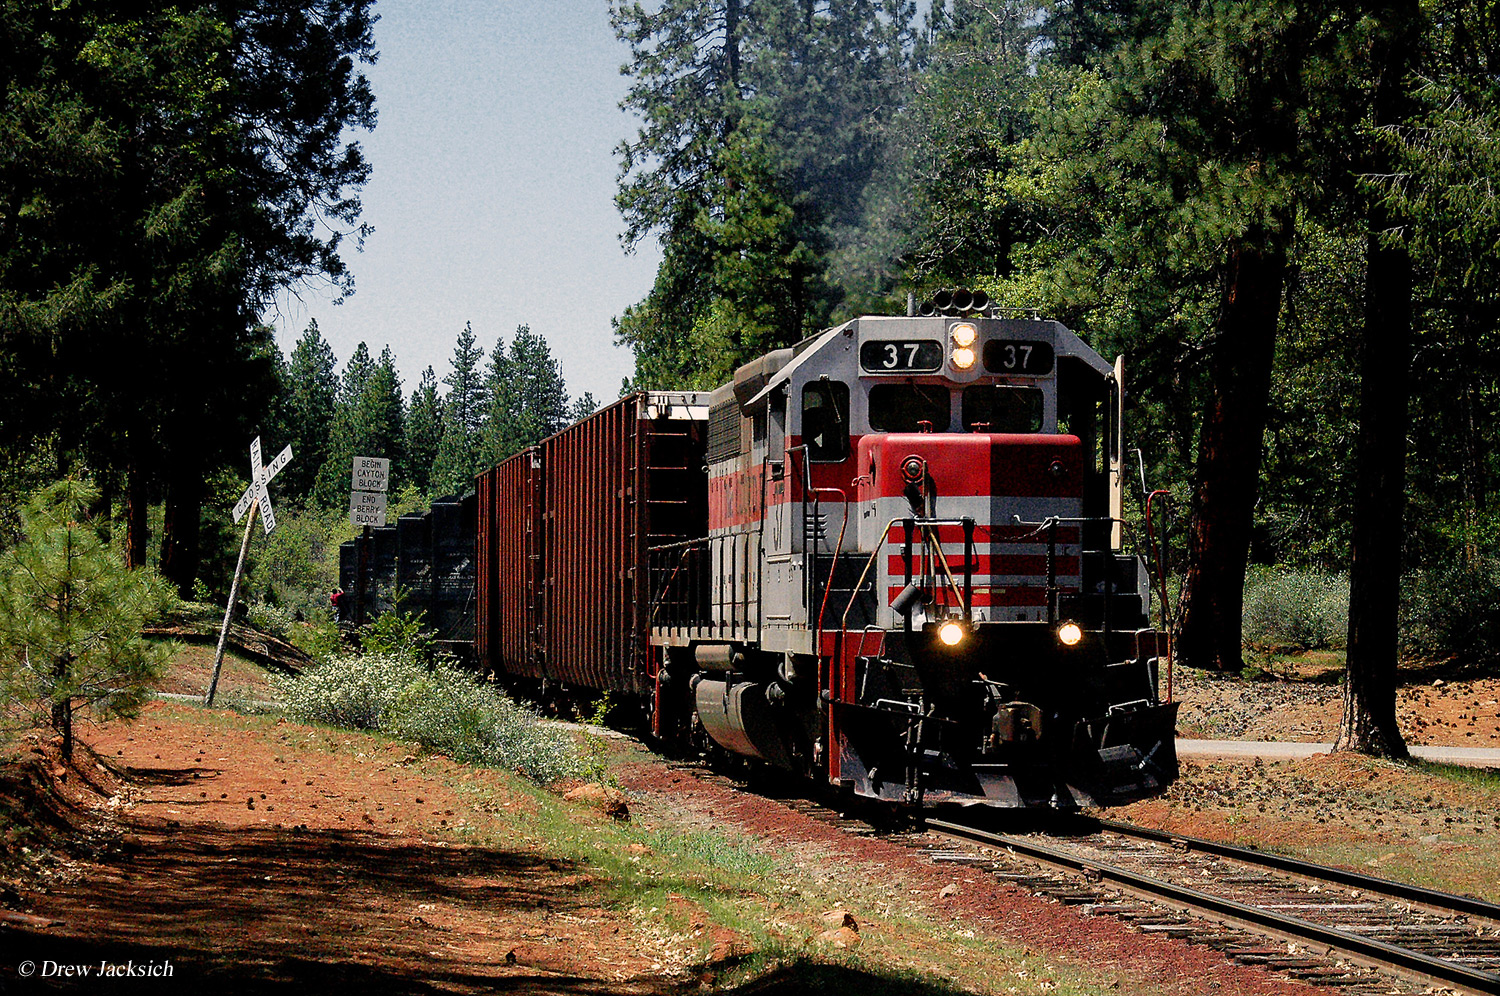 The Emd Sd38 Series